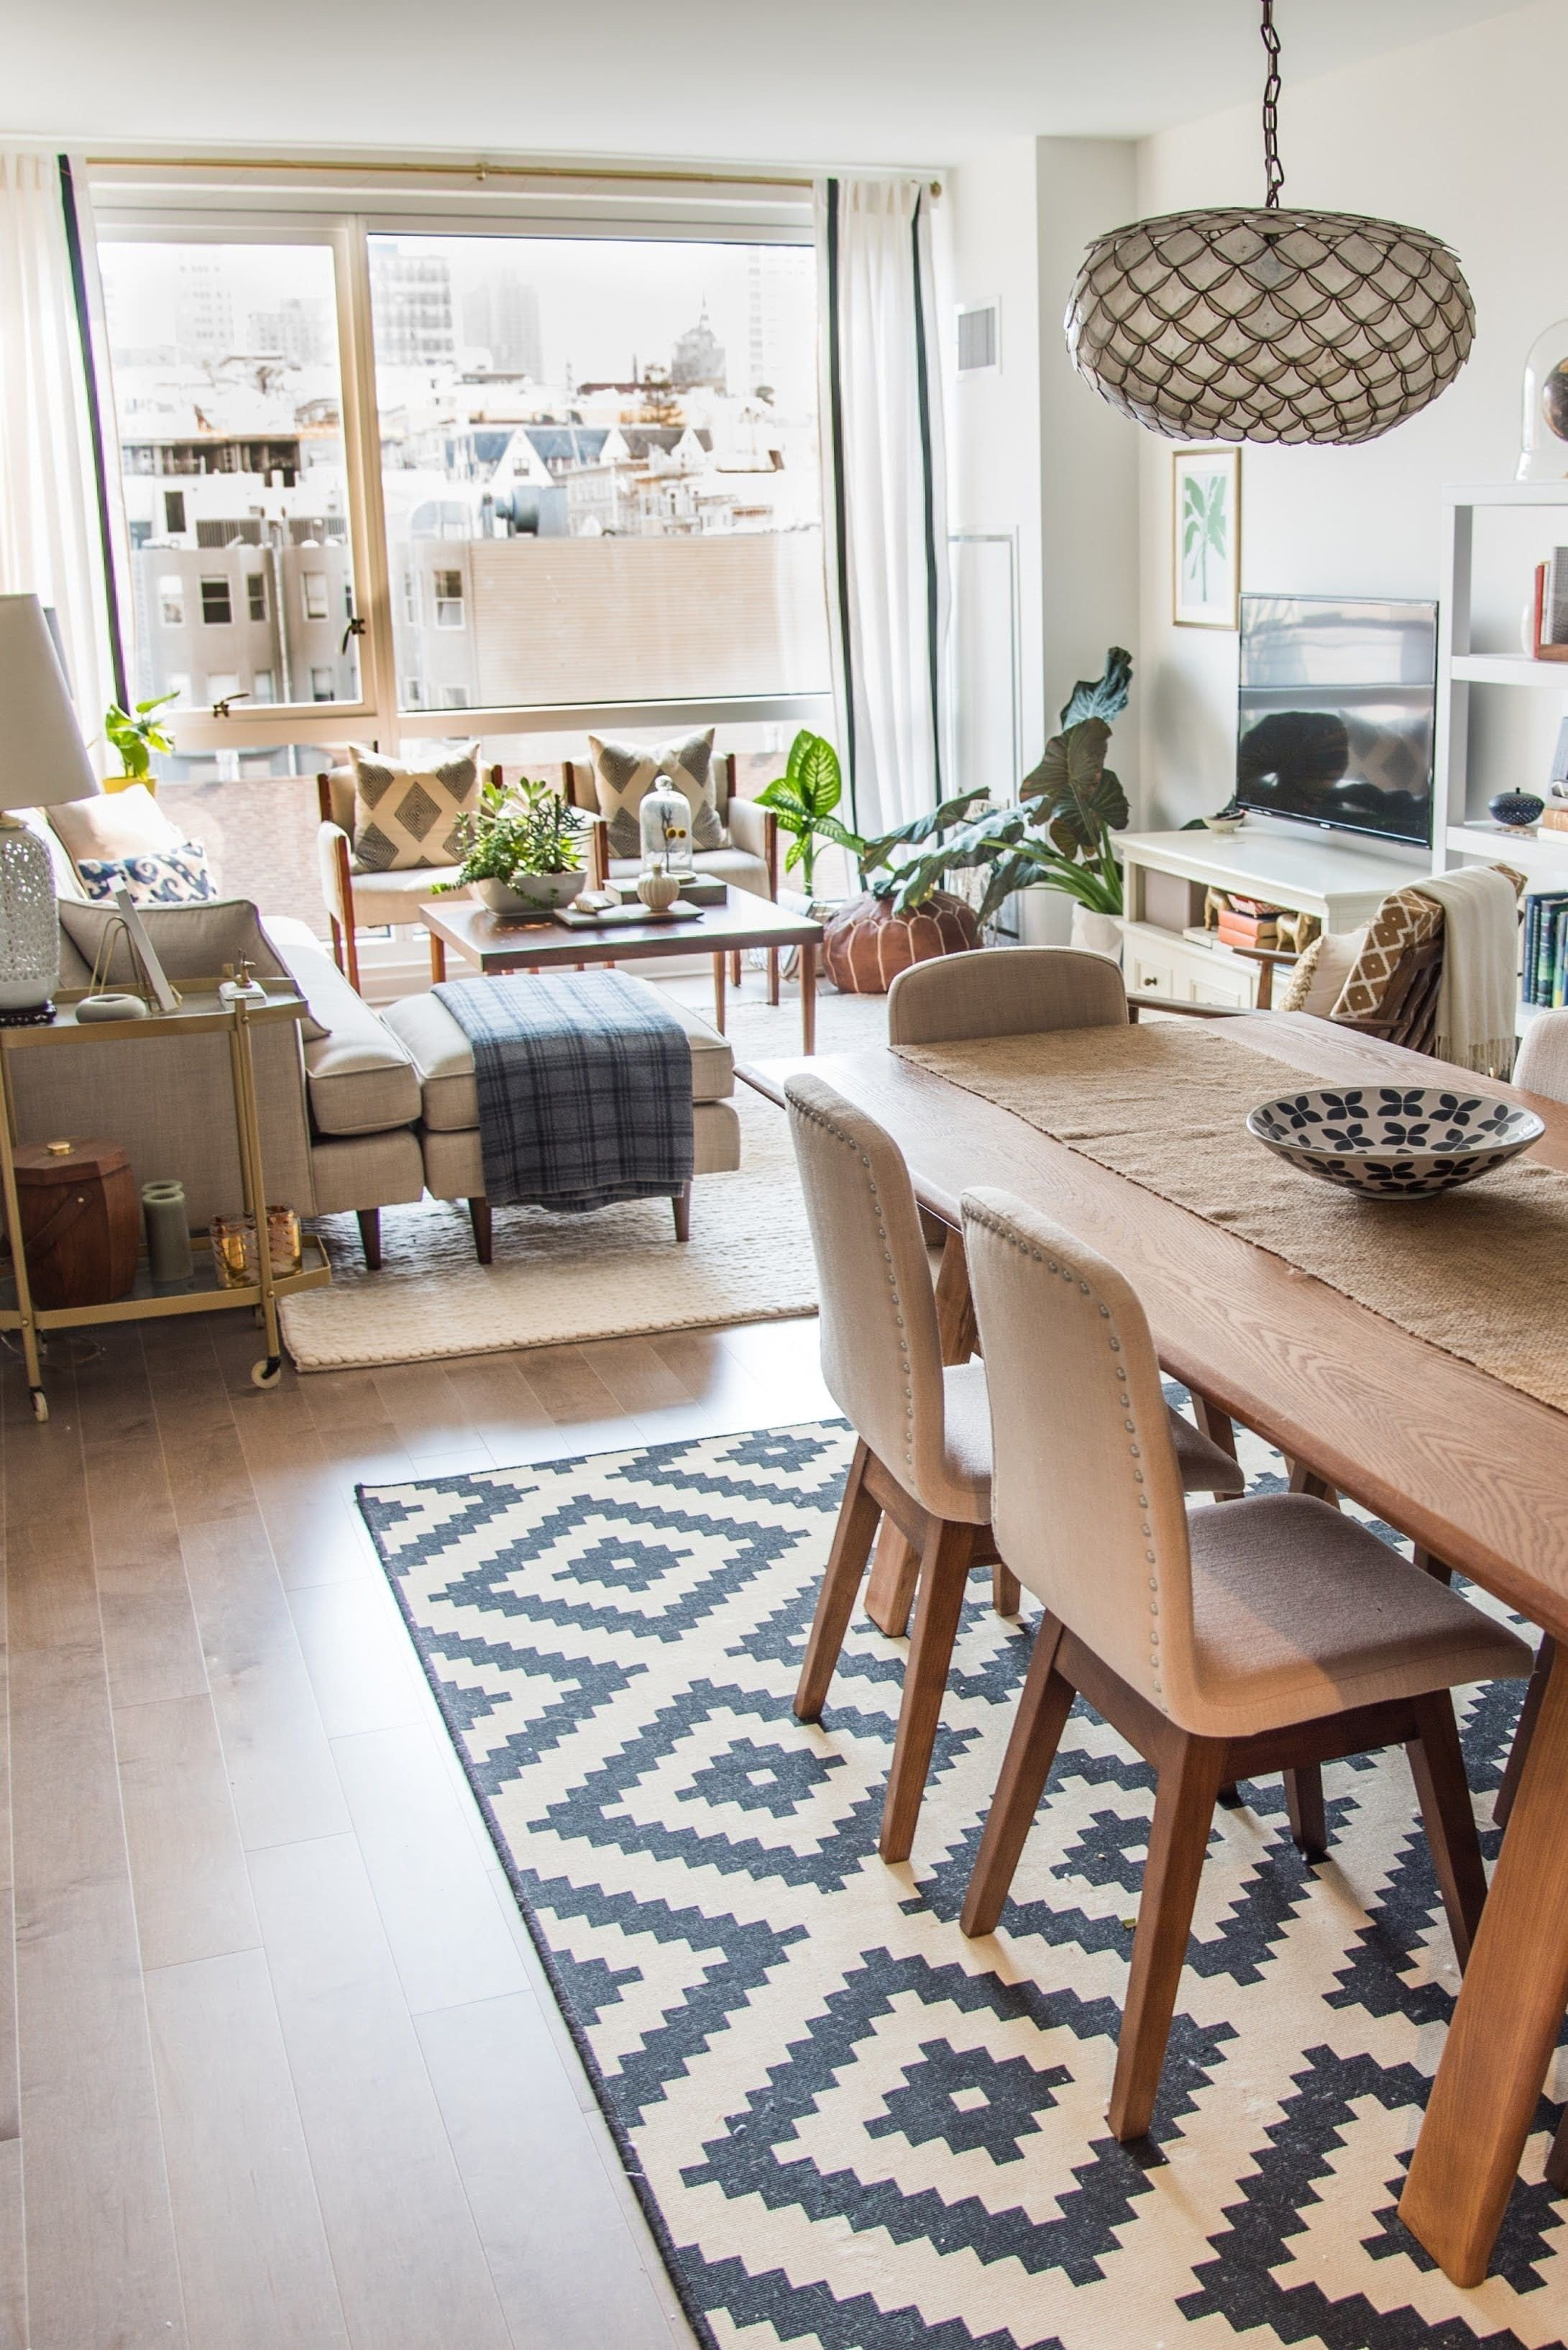 Small Living Dining Room Ideas Fresh Jeni's Mixed & Matched San Francisco Apartment Small Spaces In 2019